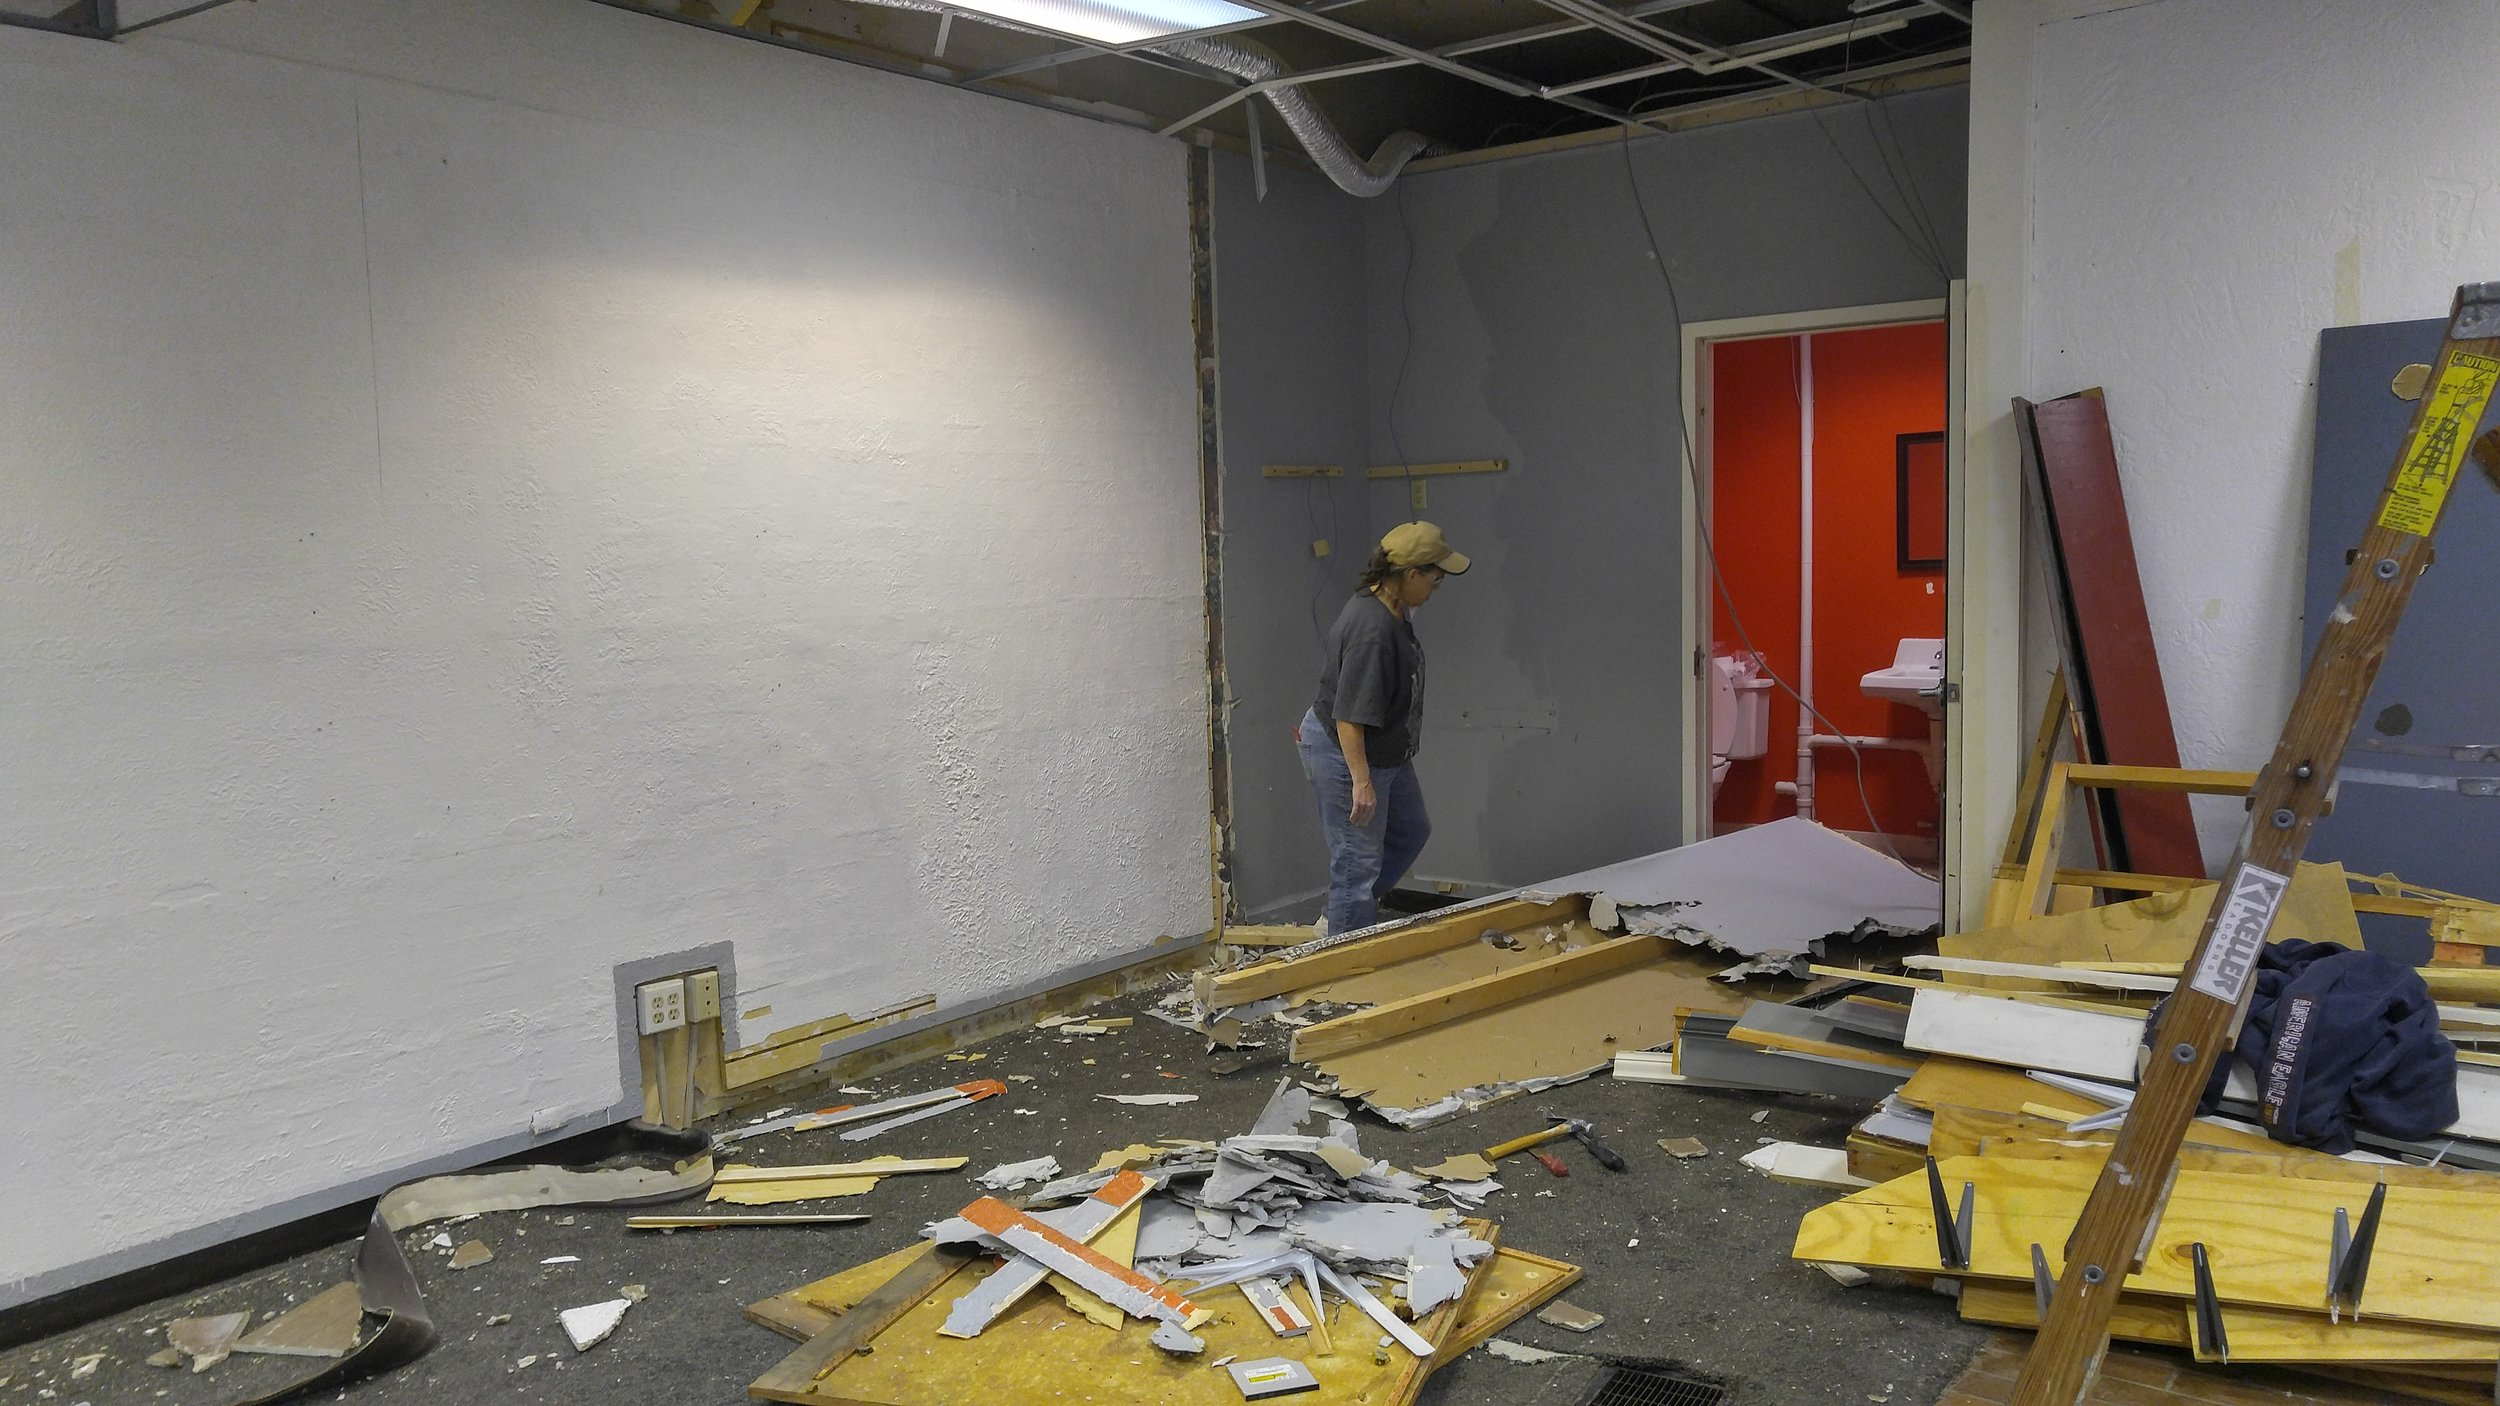 Tearing down a partial wall in order to improve flow of foot traffic to the restroom.